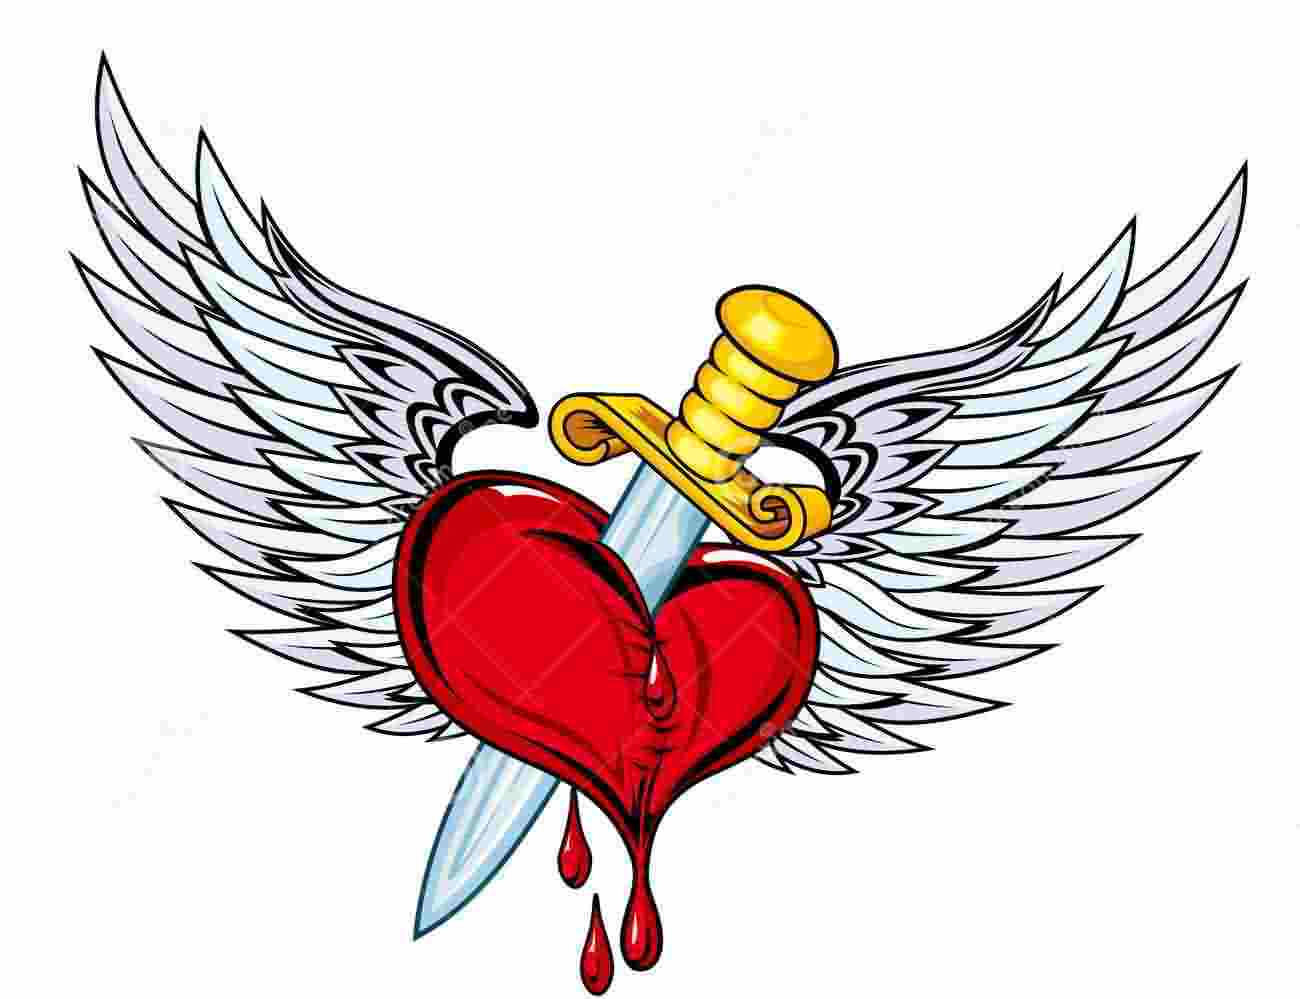 Sword In Red Heart And Wings Tattoo Design